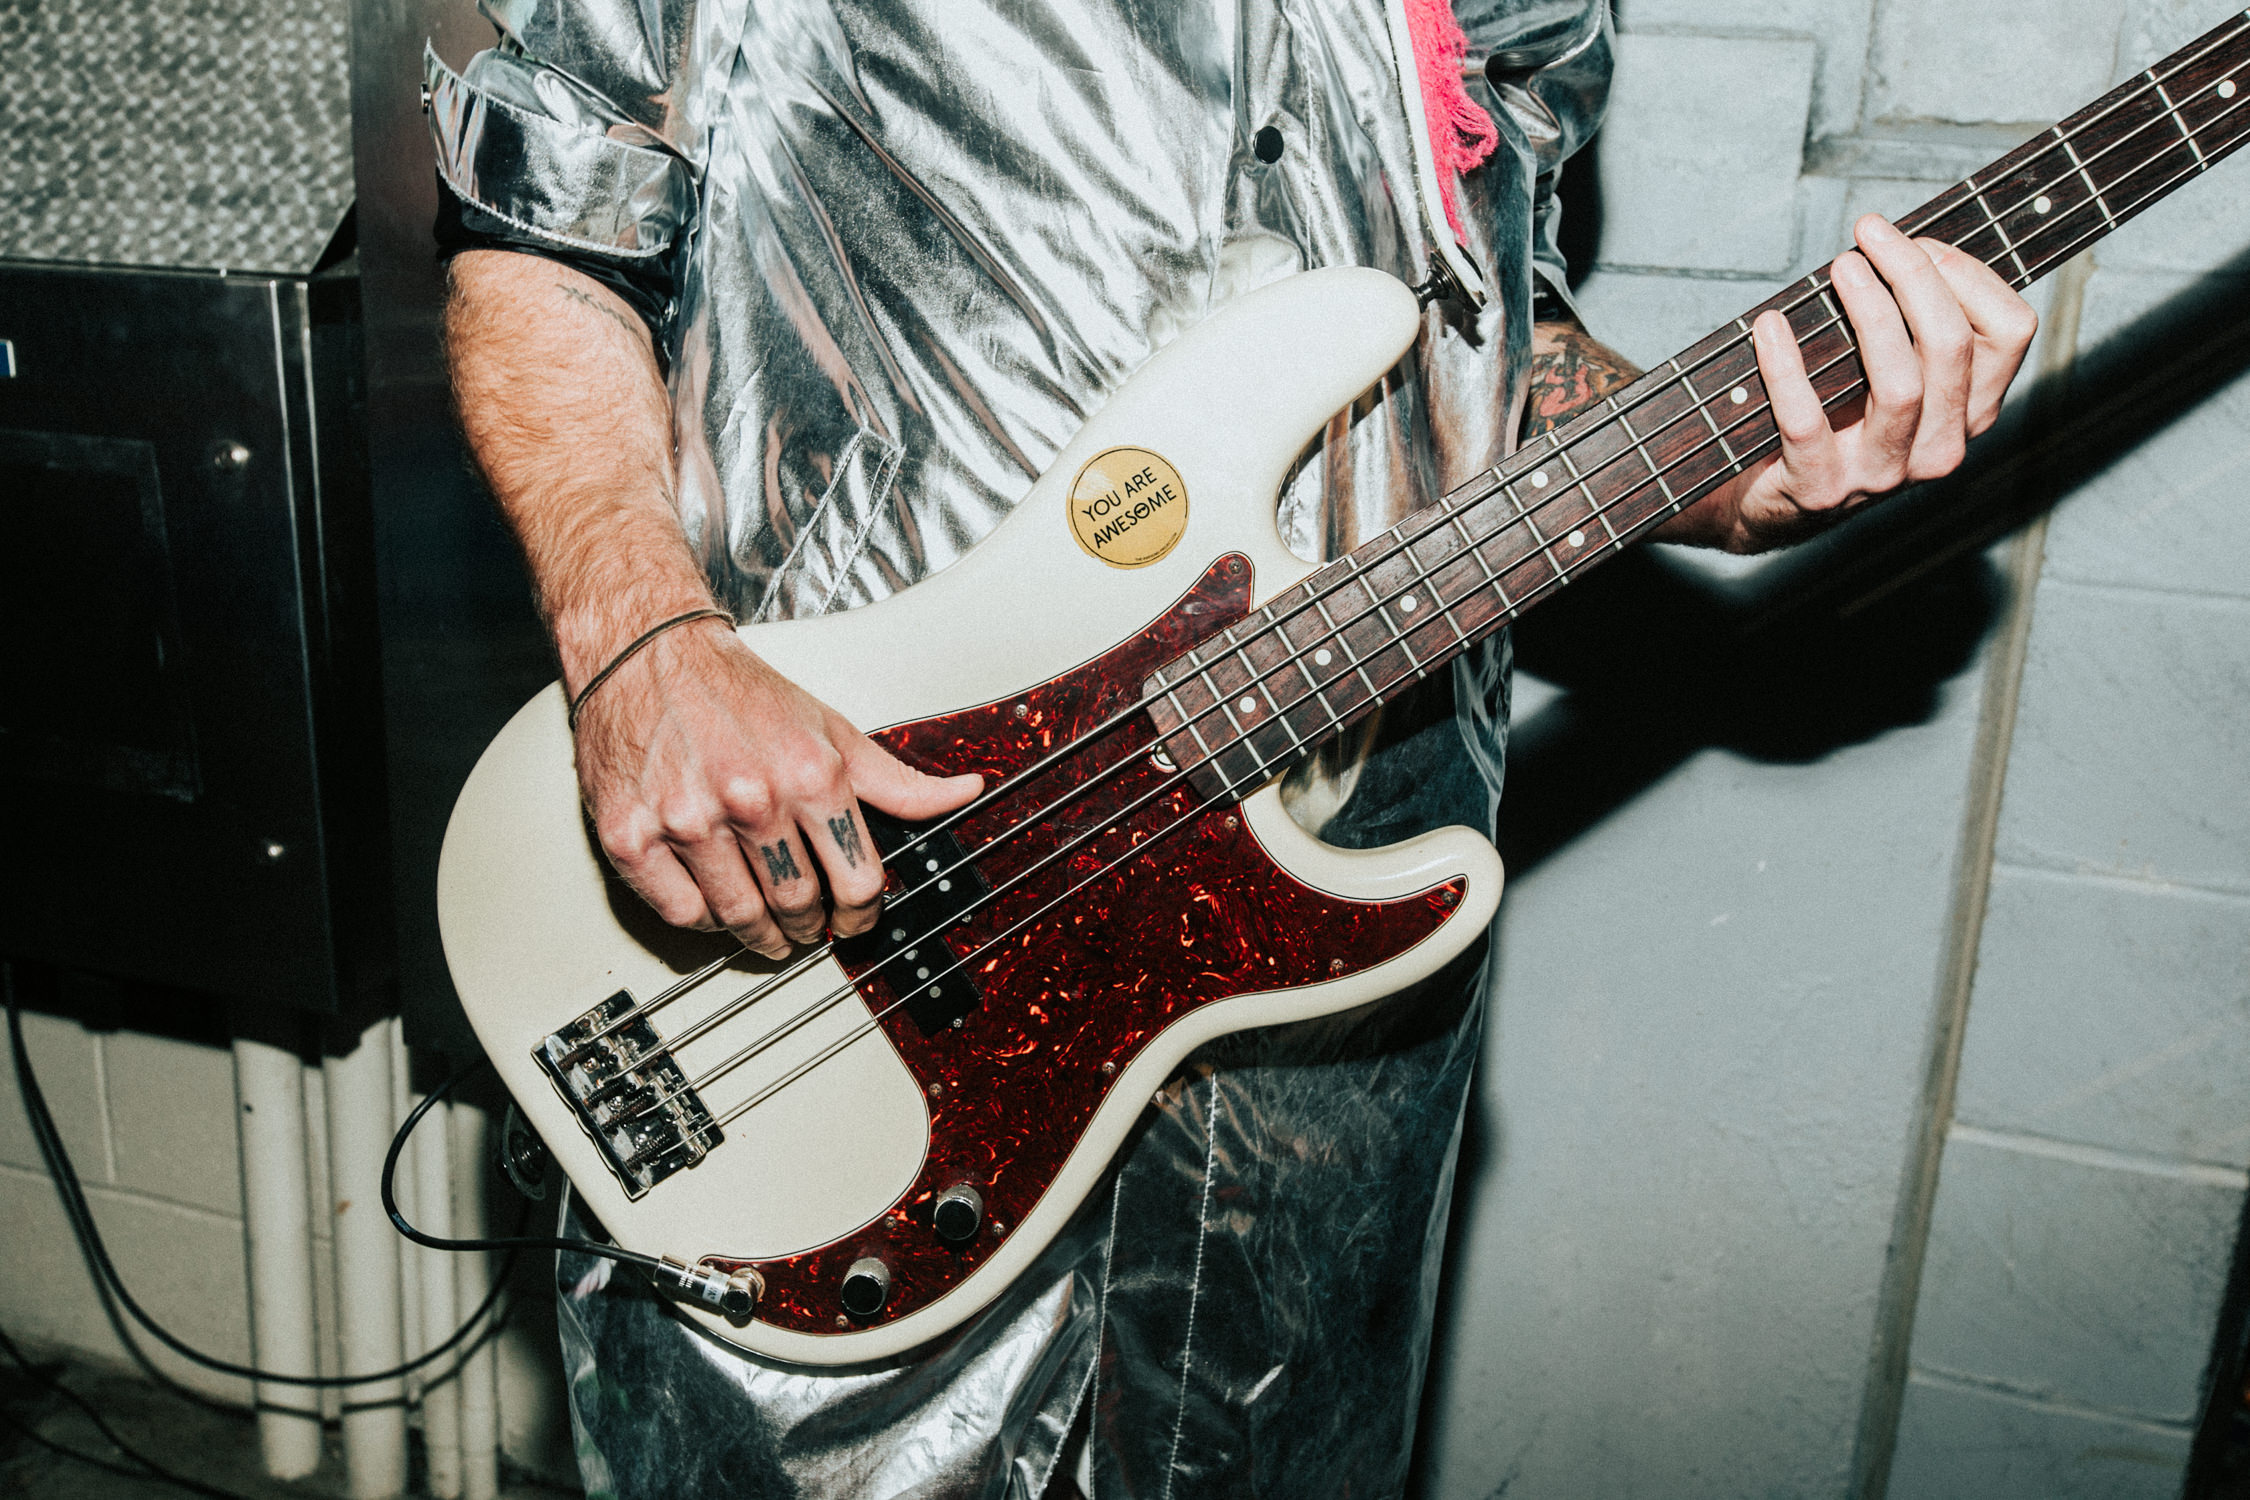 bass-you-are-awesome-sticker-backstage-tour-AnnaLeeMedia